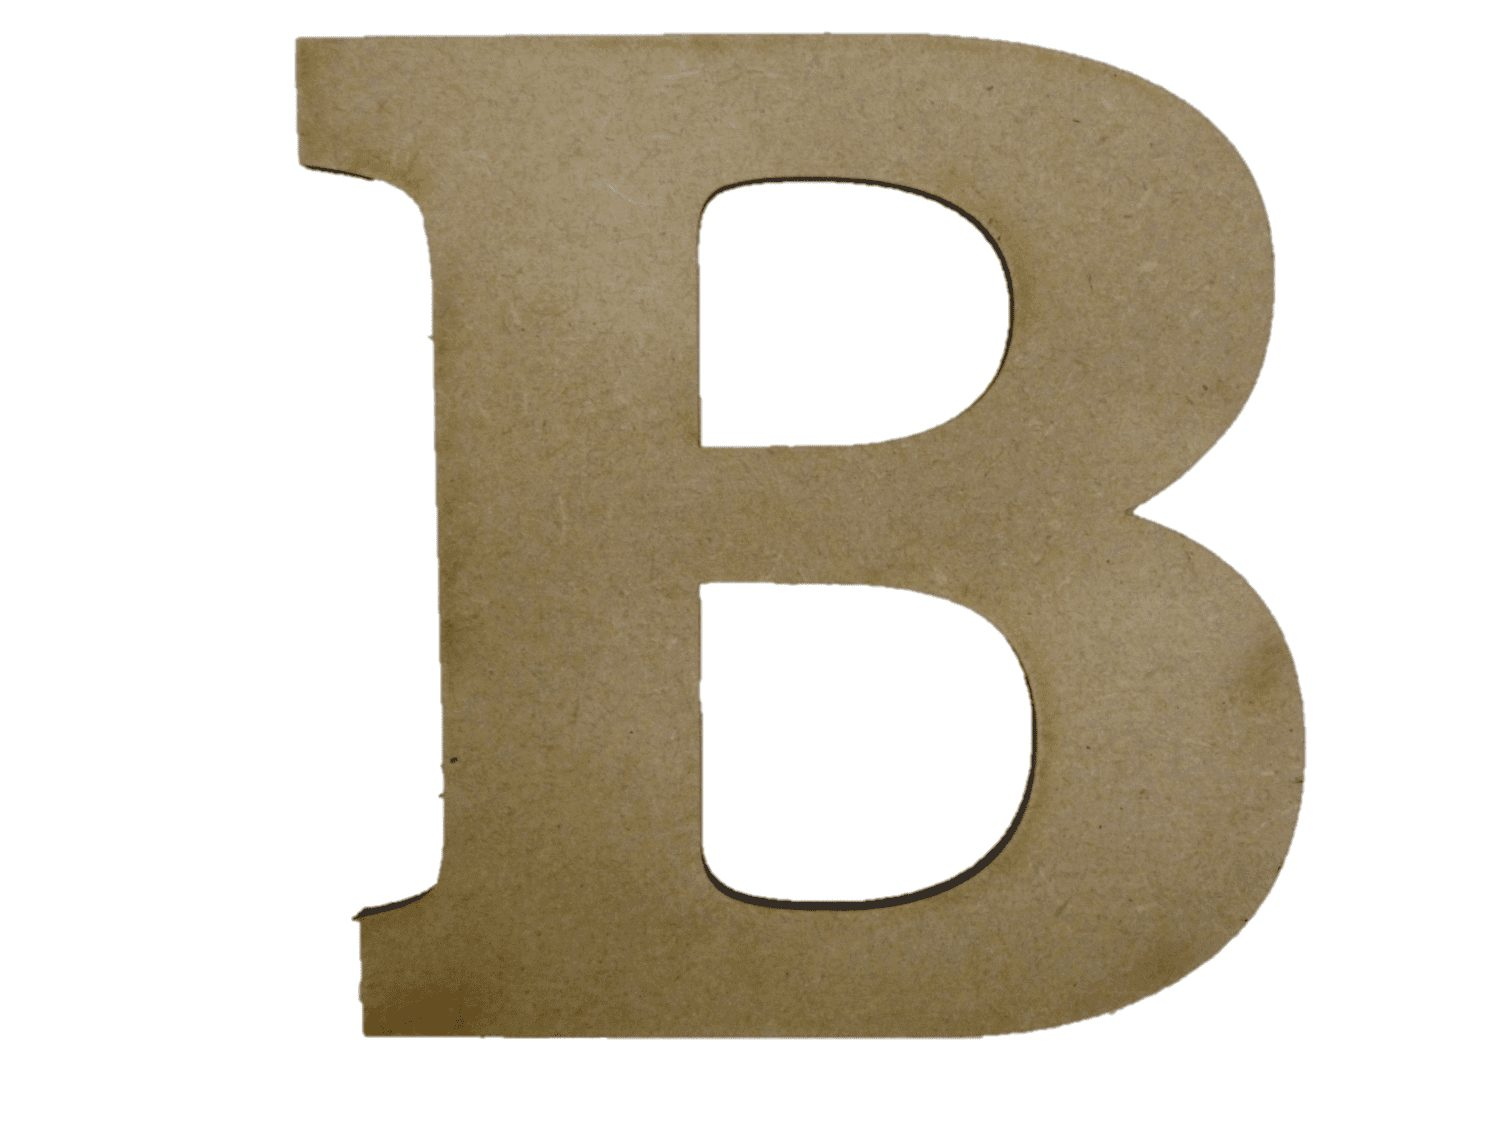 ITC Bookman demi font Mdf Wooden Letters Numbers Alphabet various sizes blank L4